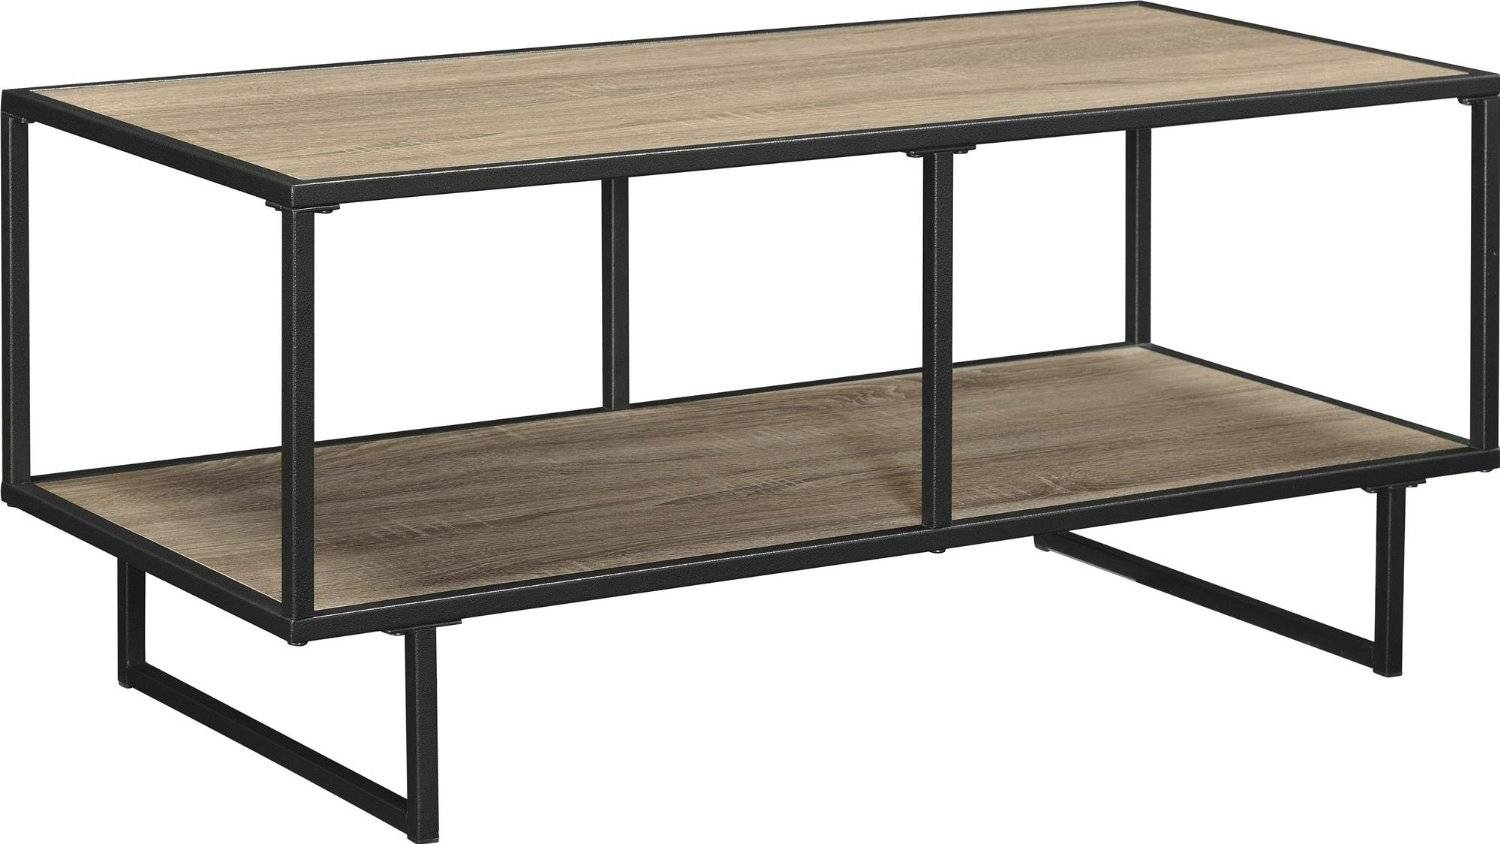 Cheap Coffee Tables Under $100 That Work For Every Style intended for Cheap Oak Coffee Tables (Image 4 of 30)